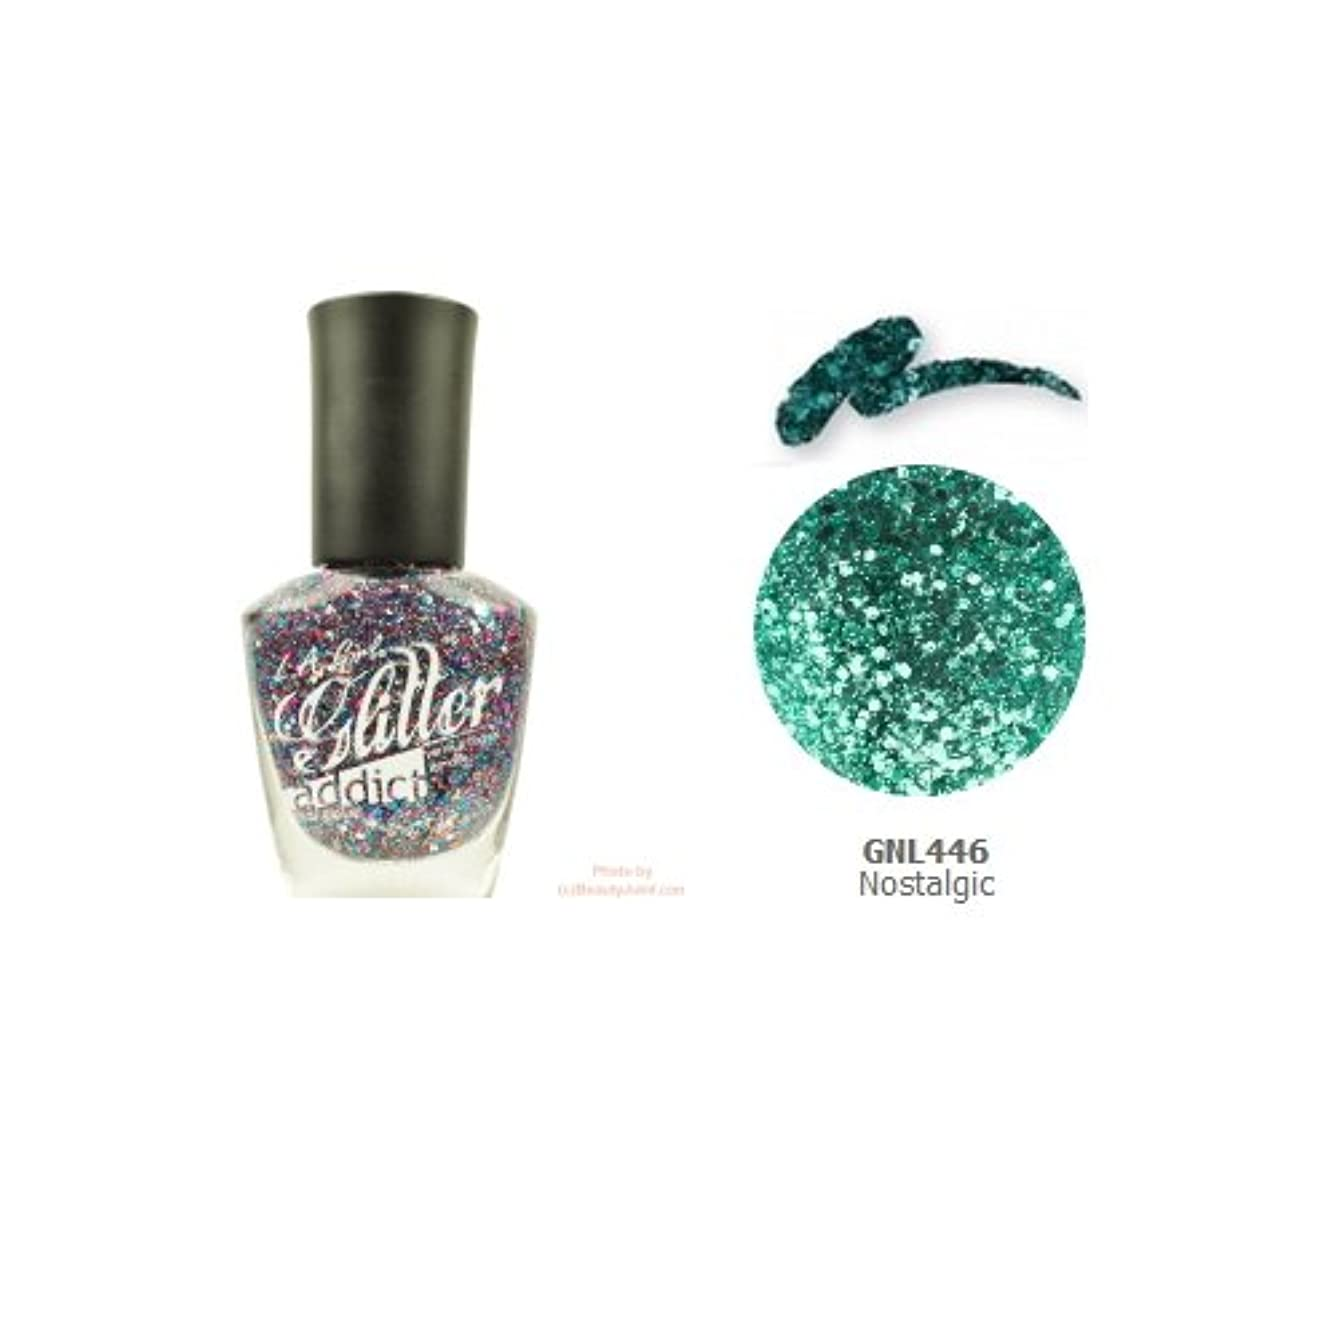 課税アイデア夢(3 Pack) LA GIRL Glitter Addict Polish - Nostalgic (並行輸入品)